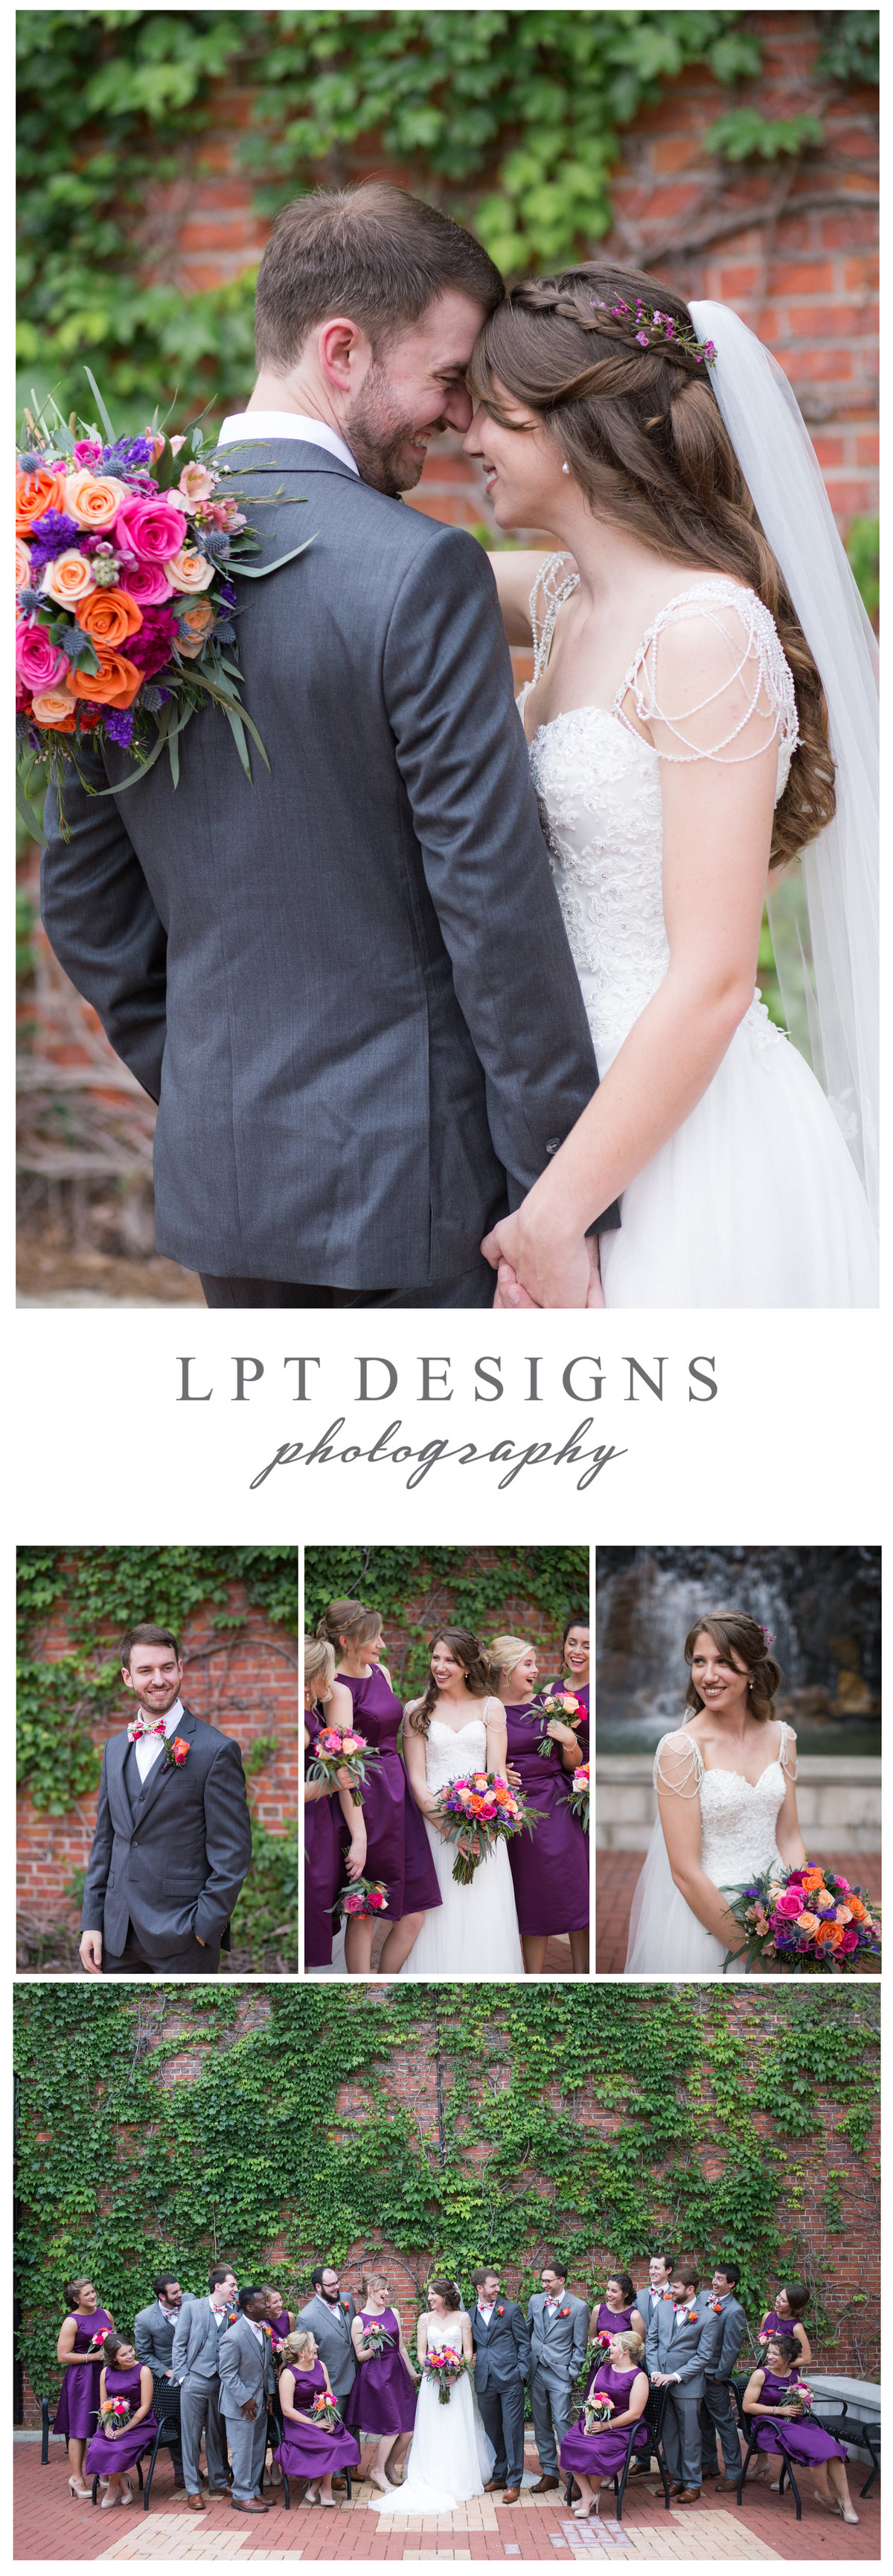 LPT Designs Photography Lydia Thrift Gadsden Alabama Fine Art Wedding Photographer LL 1